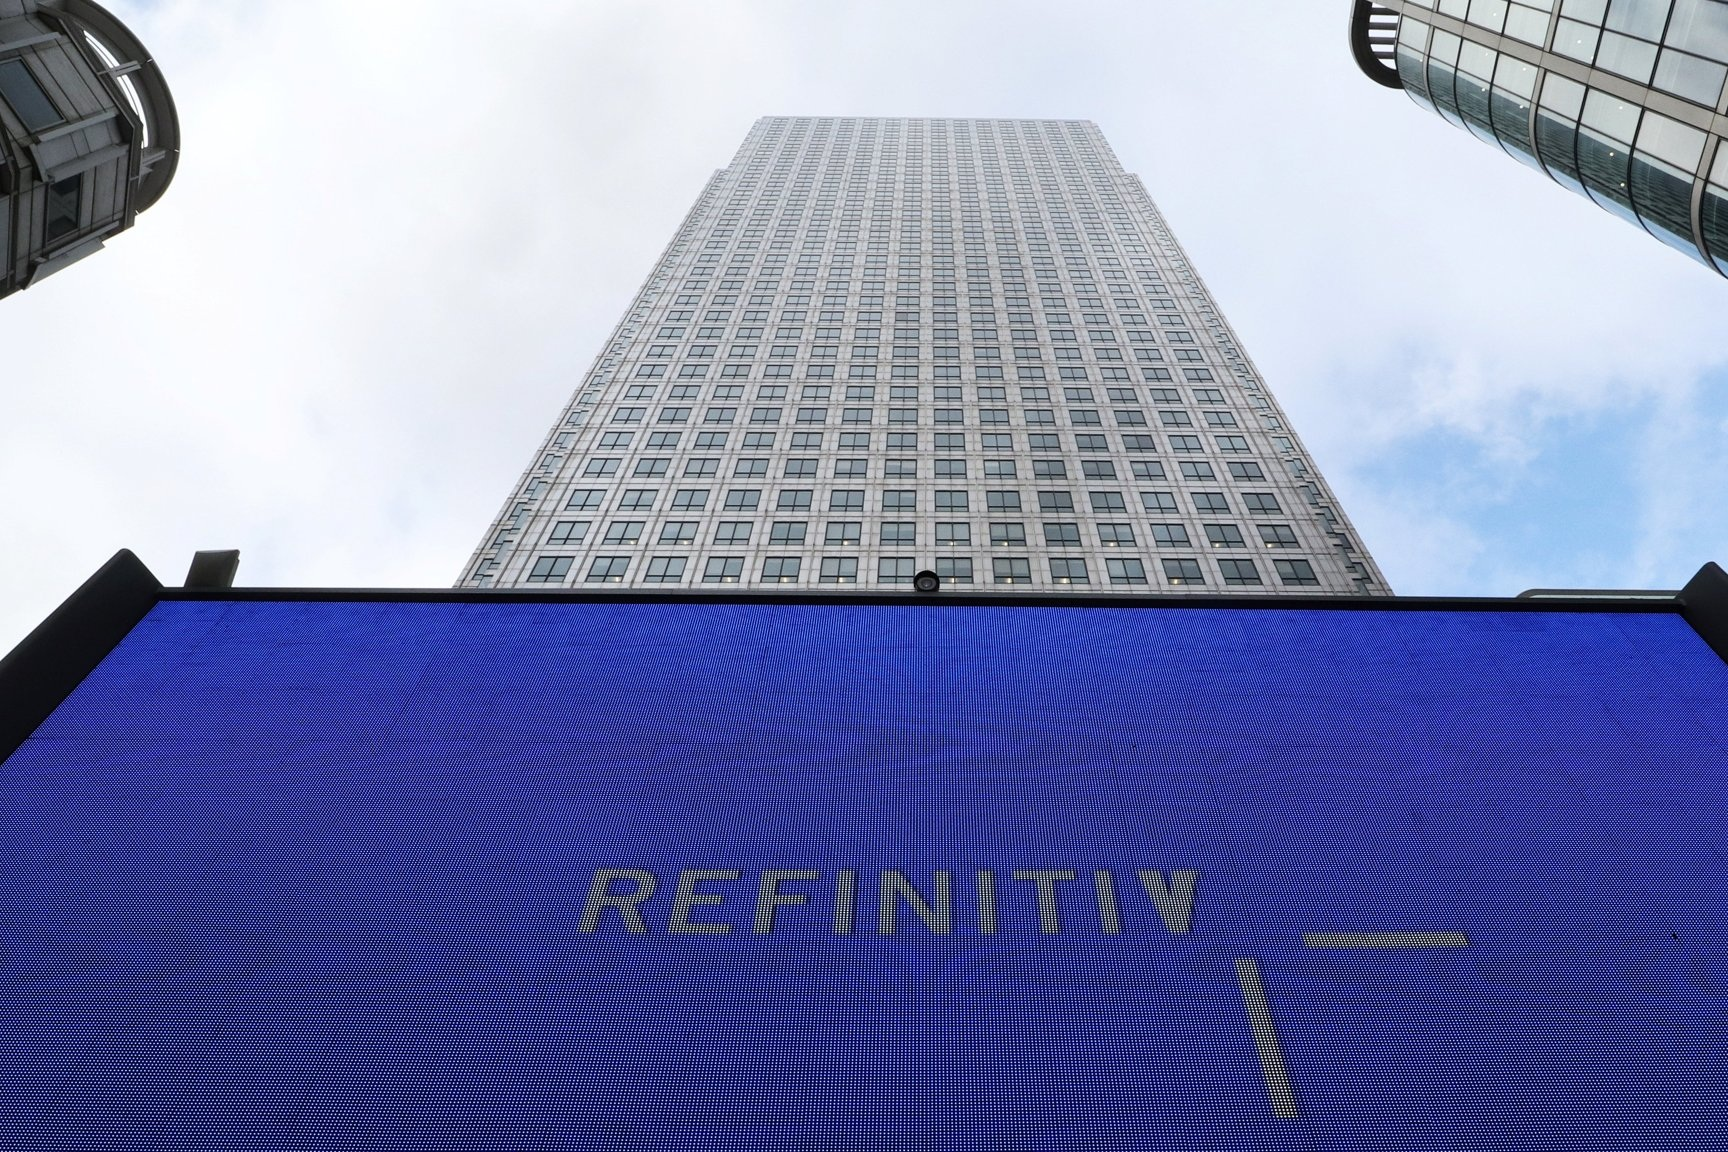 Immersion venue - Refinitiv London HQ30 South Colonnade - Canary Wharf, London E14 5EP, United KingdomGETTING THERE